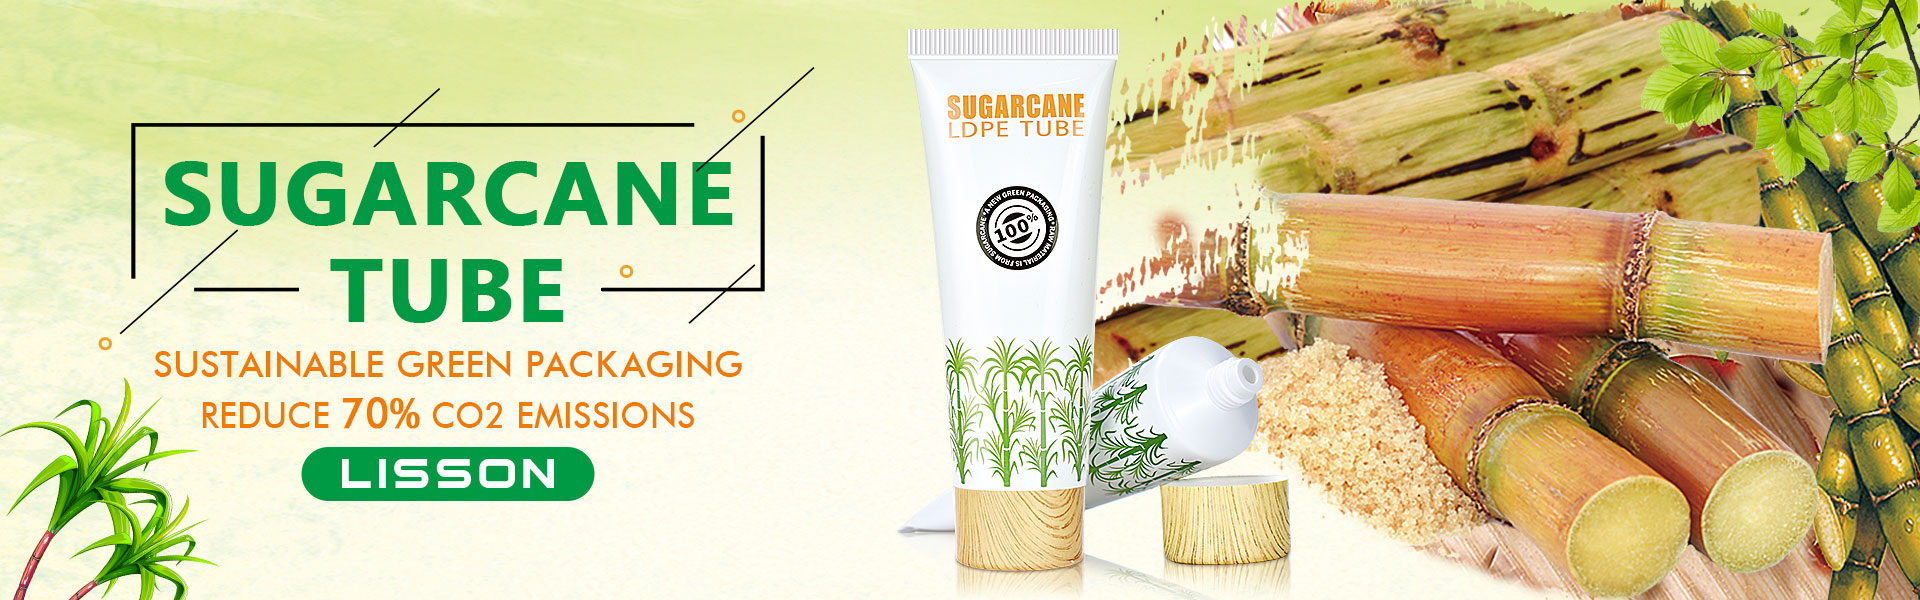 Sustainable Packaging Sugarcane Tube